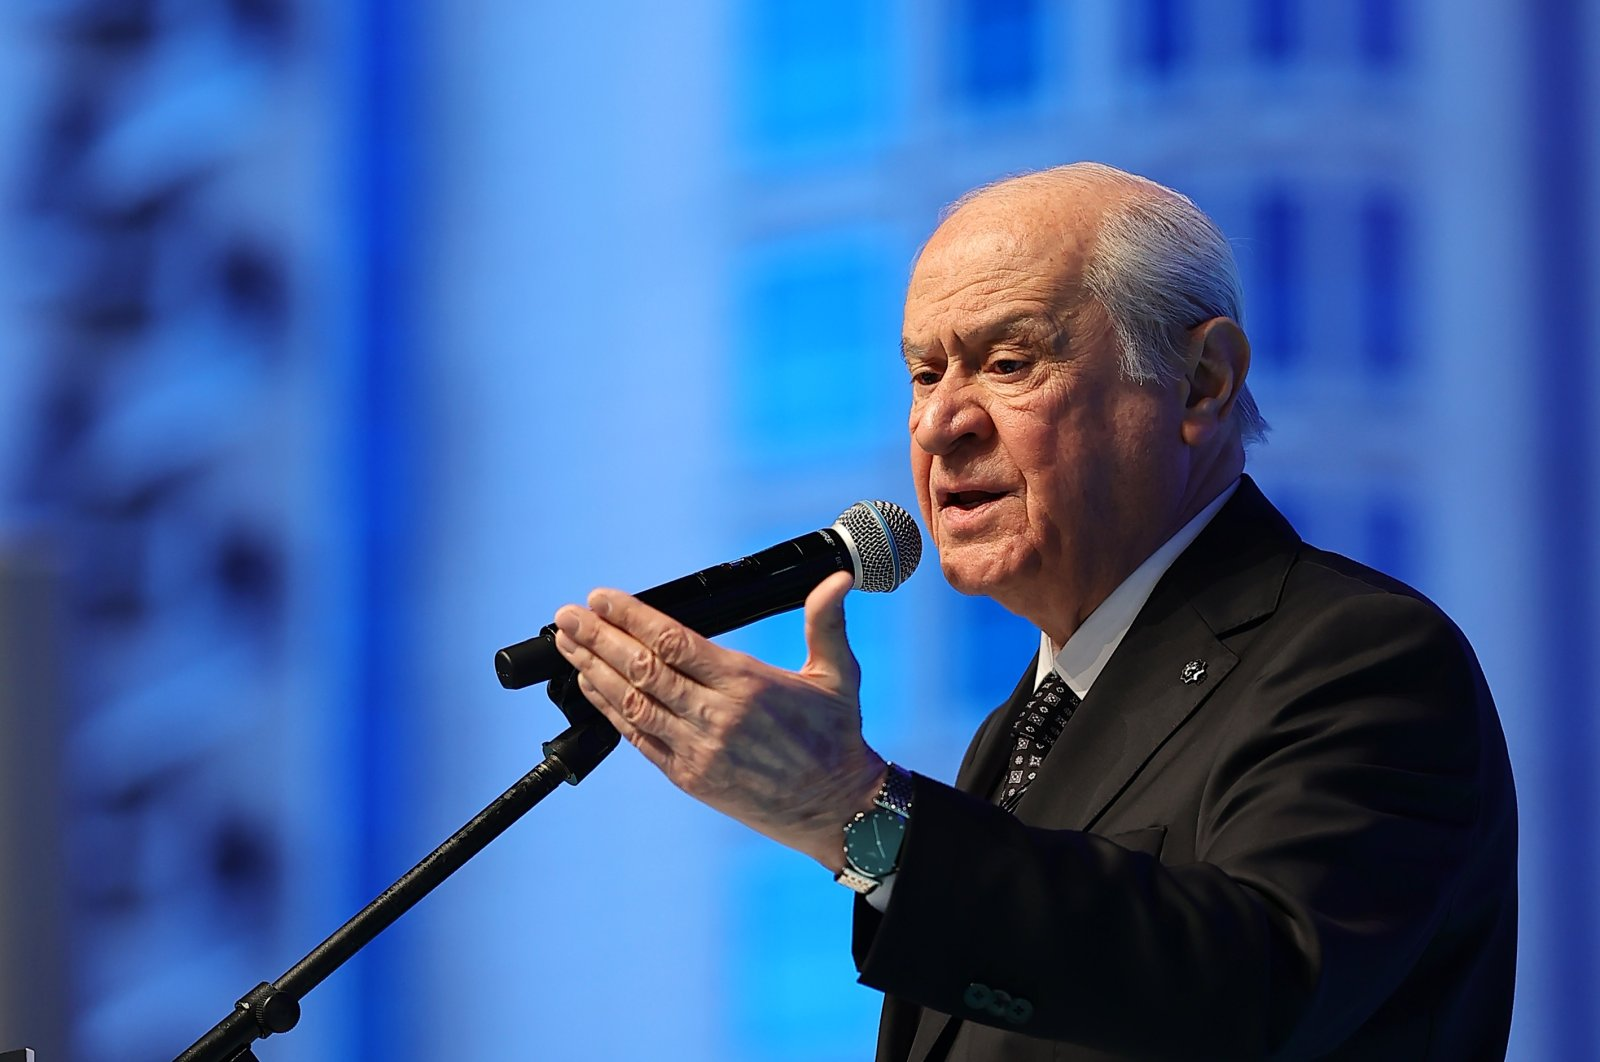 MHP leader Devlet Bahçeli gives a speech during the 13th Ordinary Congress of his party, in Ankara, Turkey, March 18, 2021. (AA)